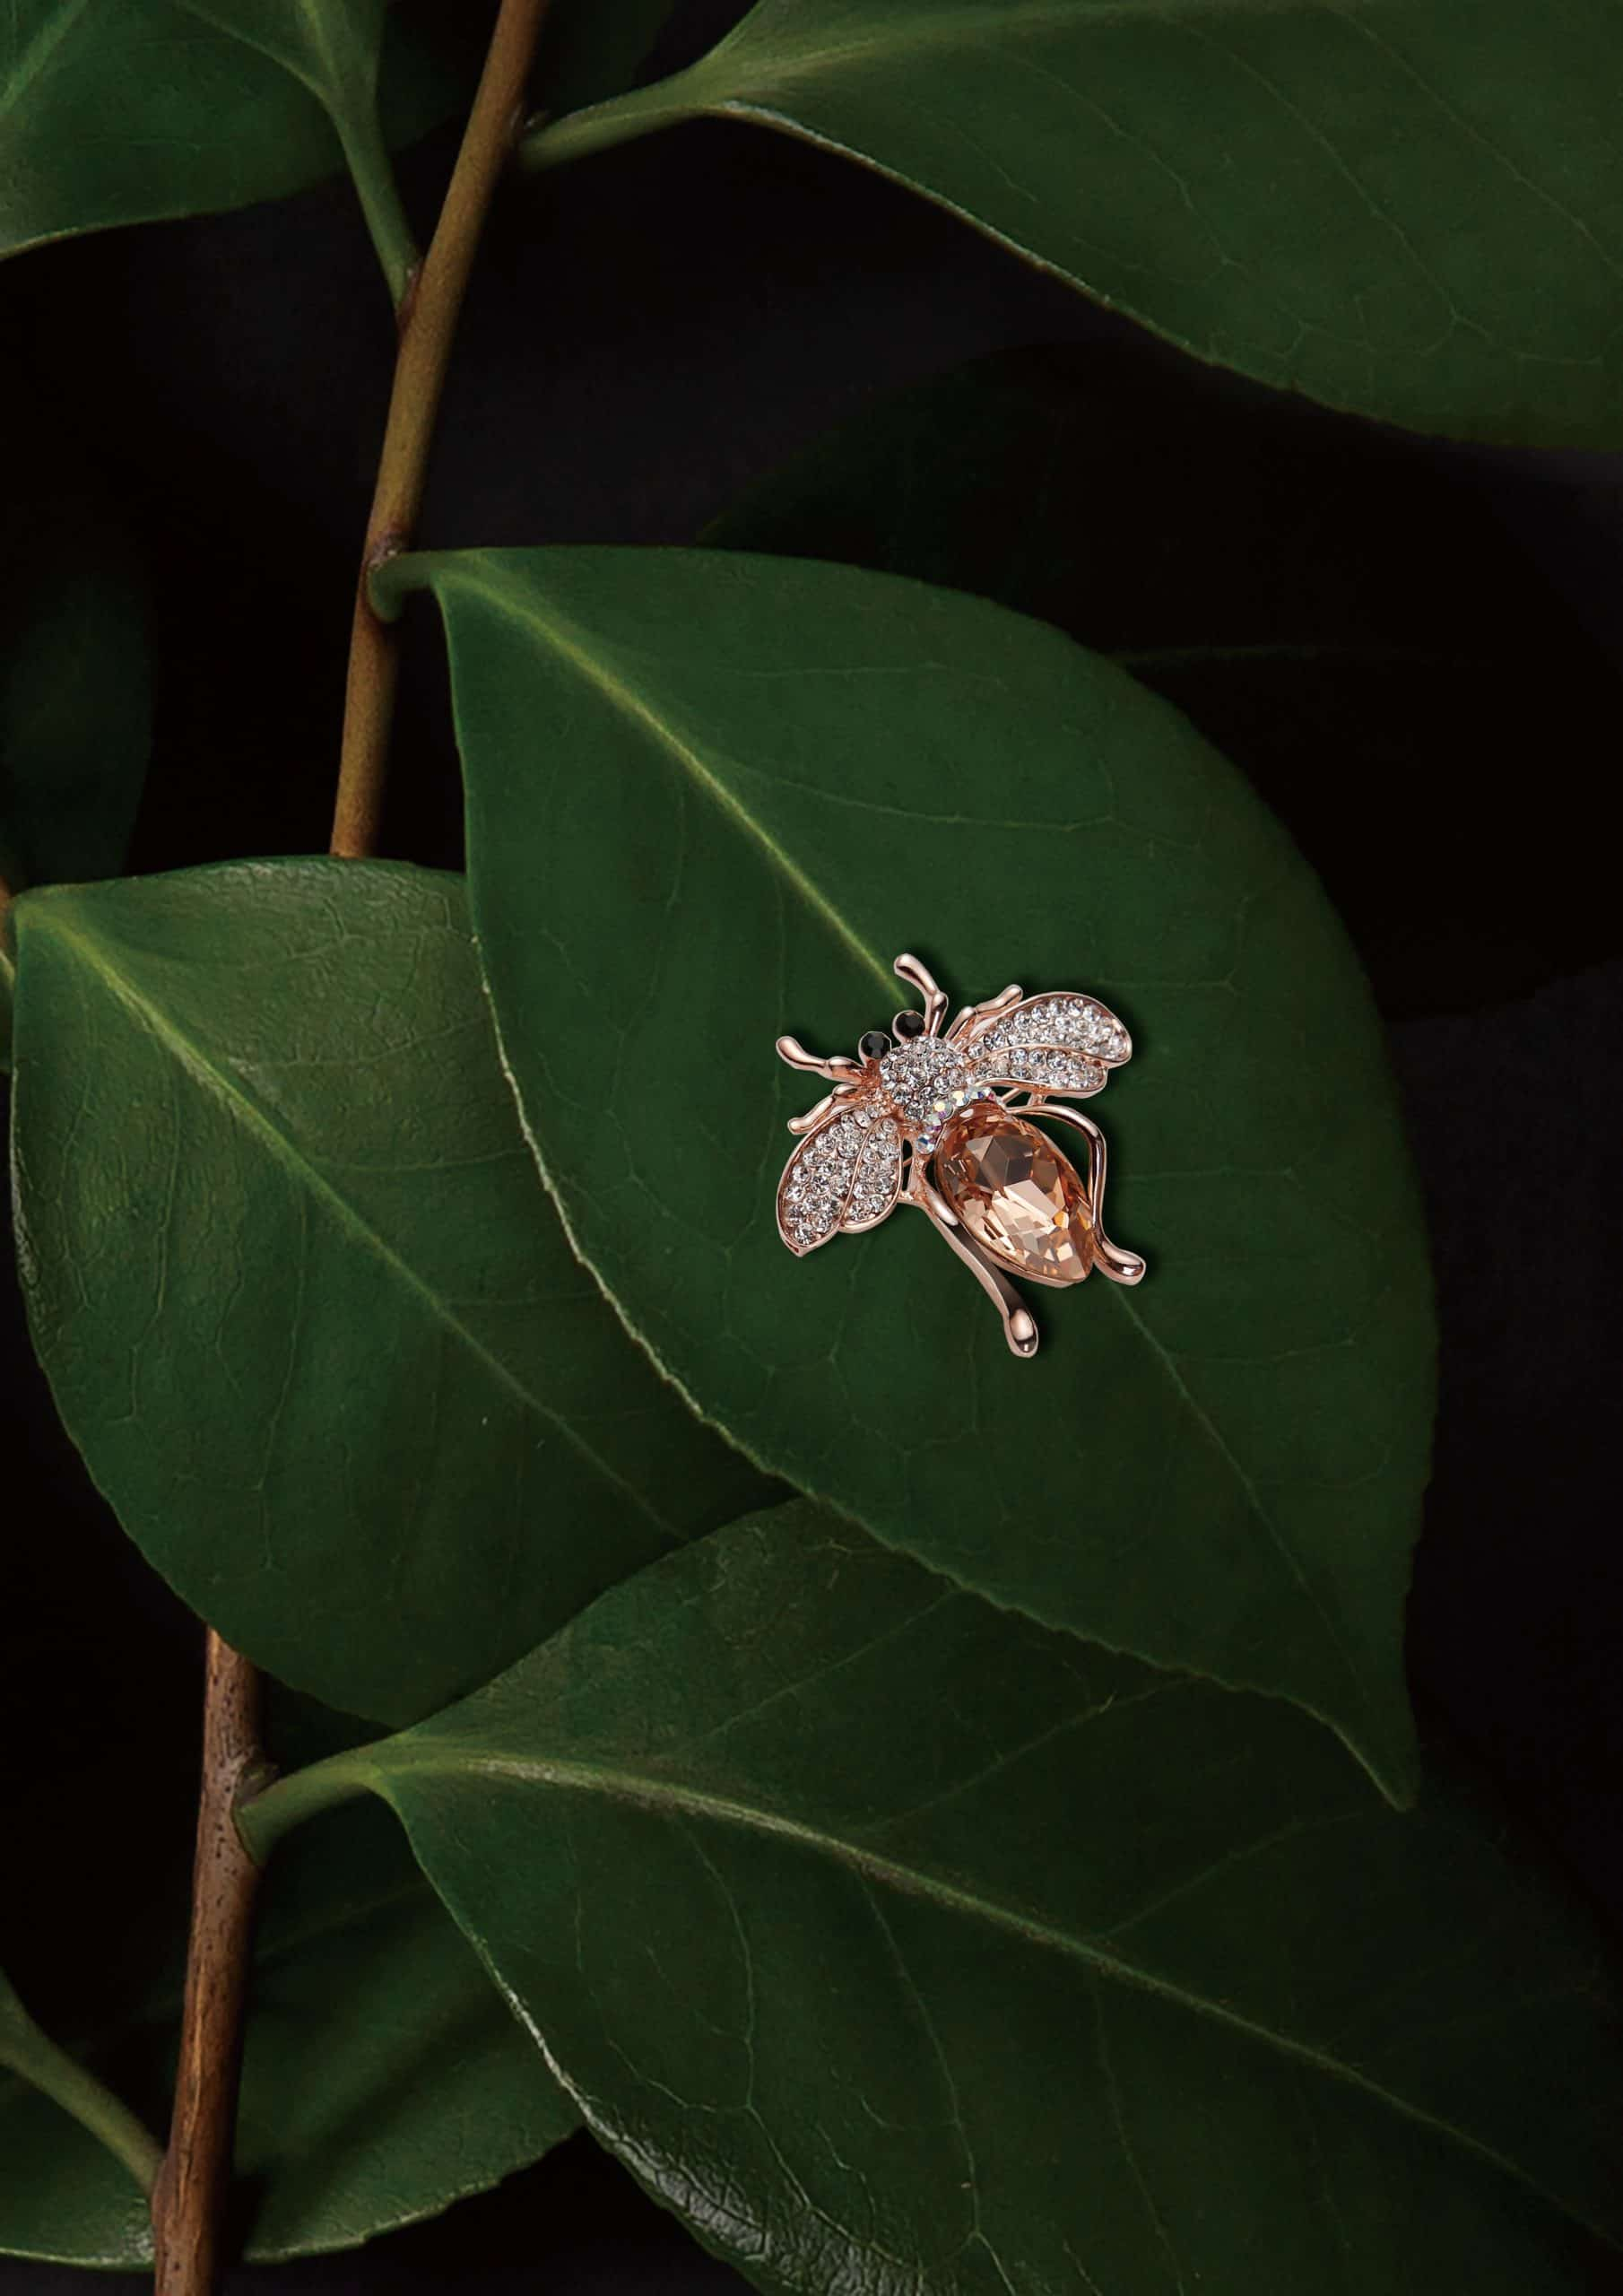 insect pendant on green leaves